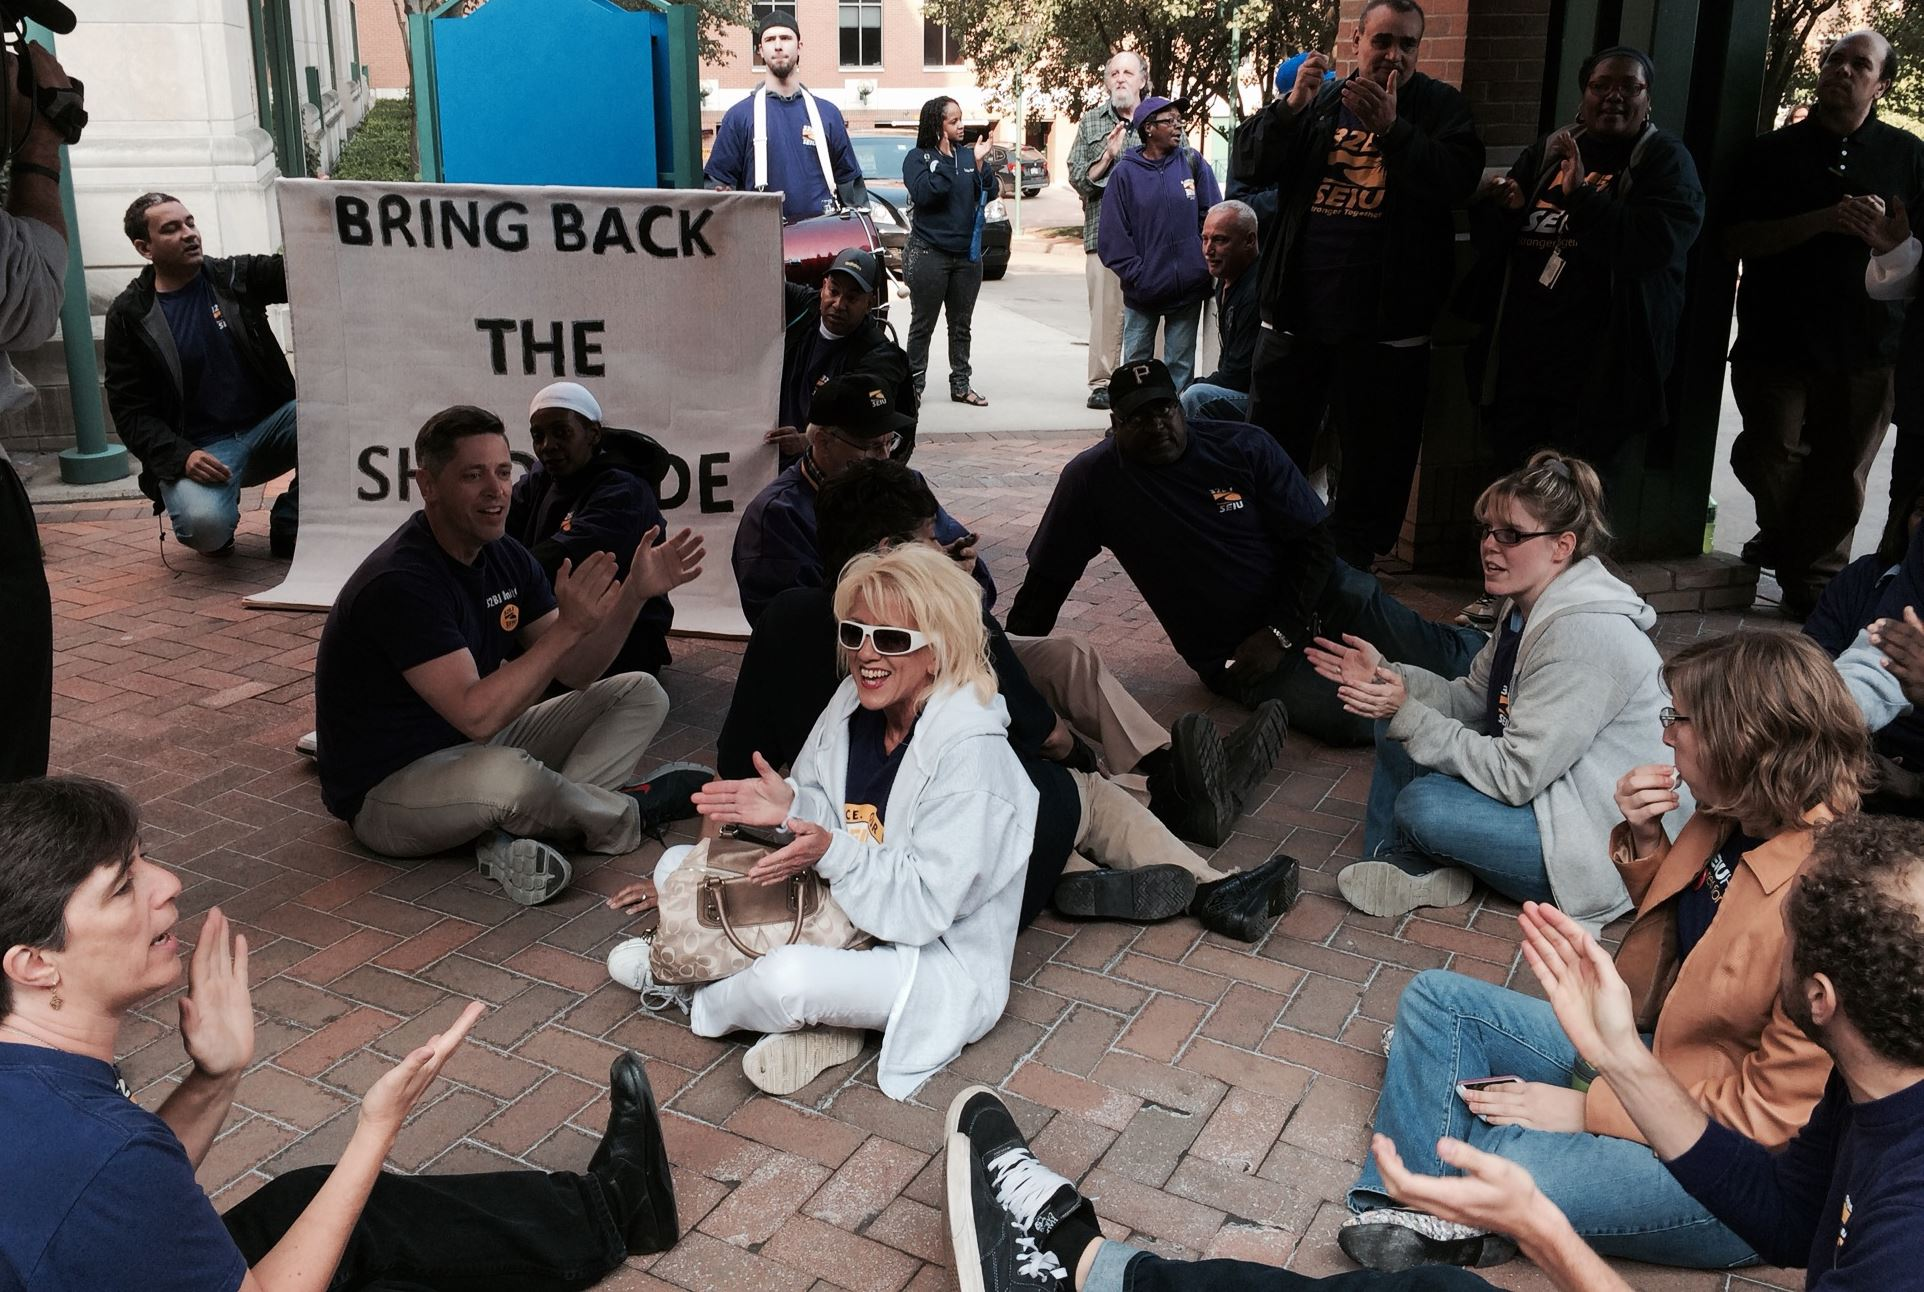 Protesters stage a sit-in near the entrance to UPMC Shadyside Hospital Wednesday. Six people were cited during the sit-in, which was protesting the replacement of a cleaning contract with a non-union staff.